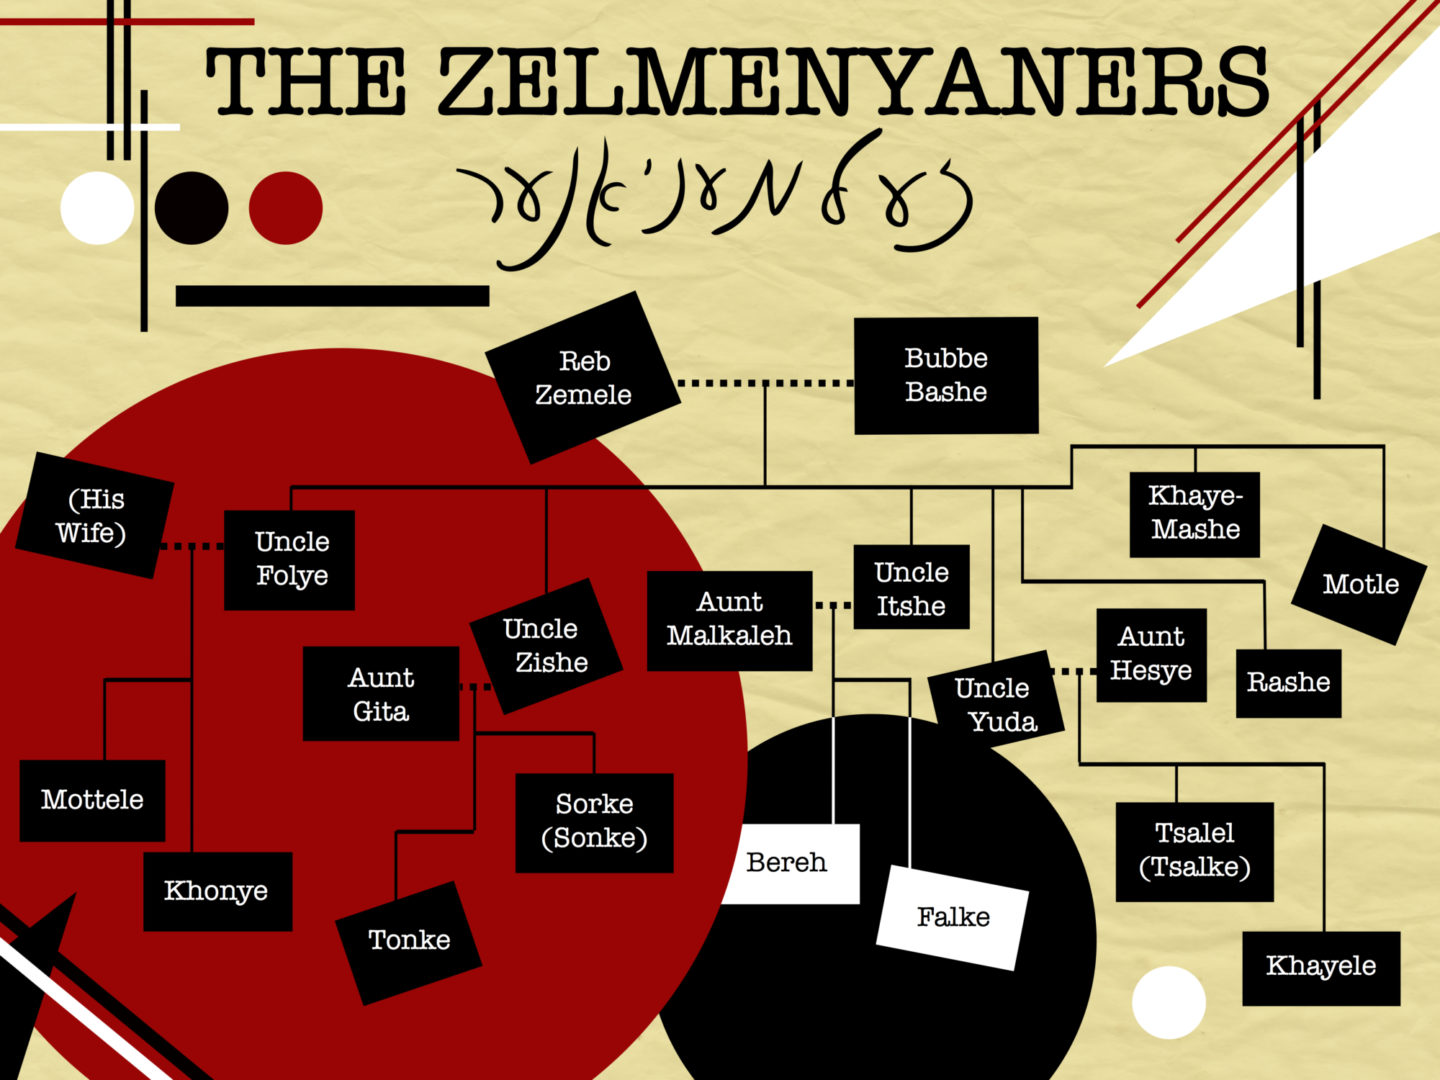 <p>The Zelmenyaners Family Tree. Illustration by David&nbsp;Coons.</p>